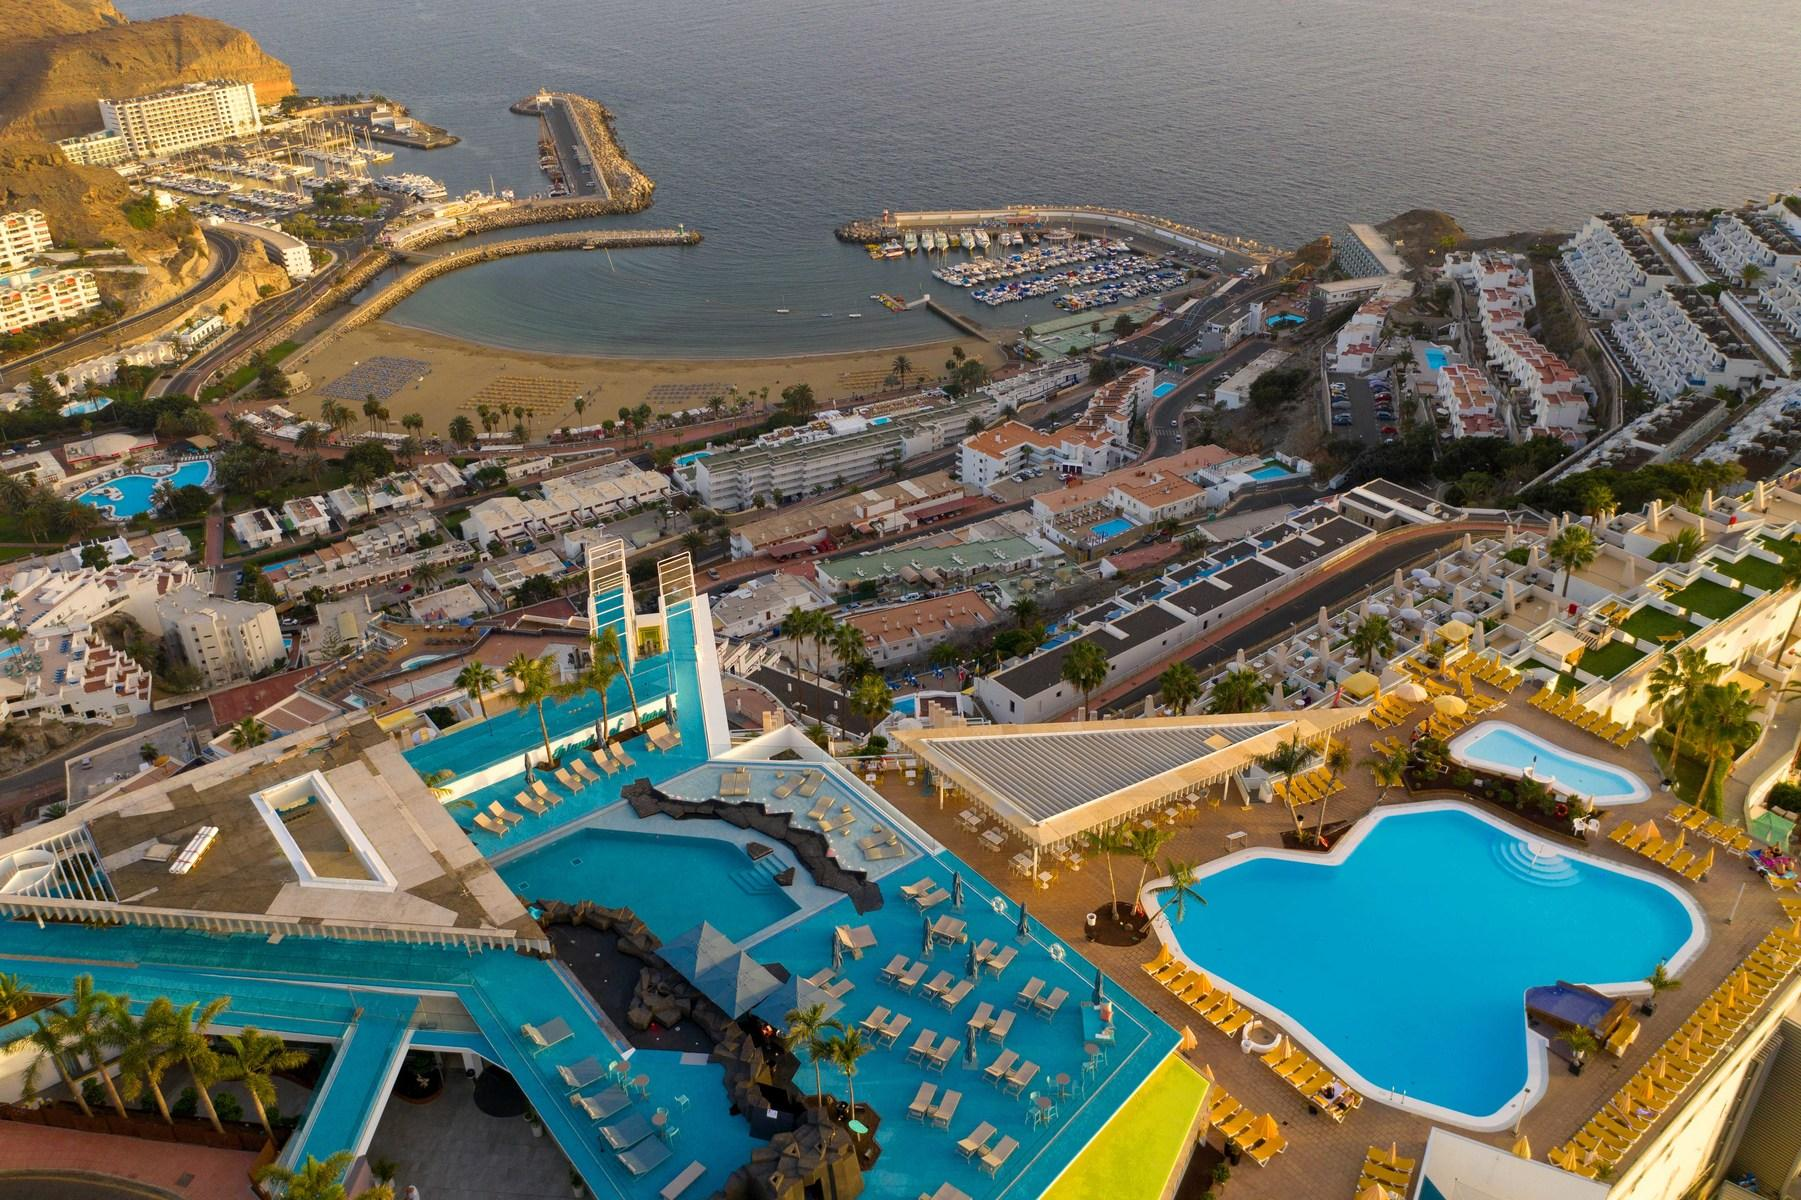 Riosol Hotel in Puerto Rico (GC), Gran Canaria, Canary Islands